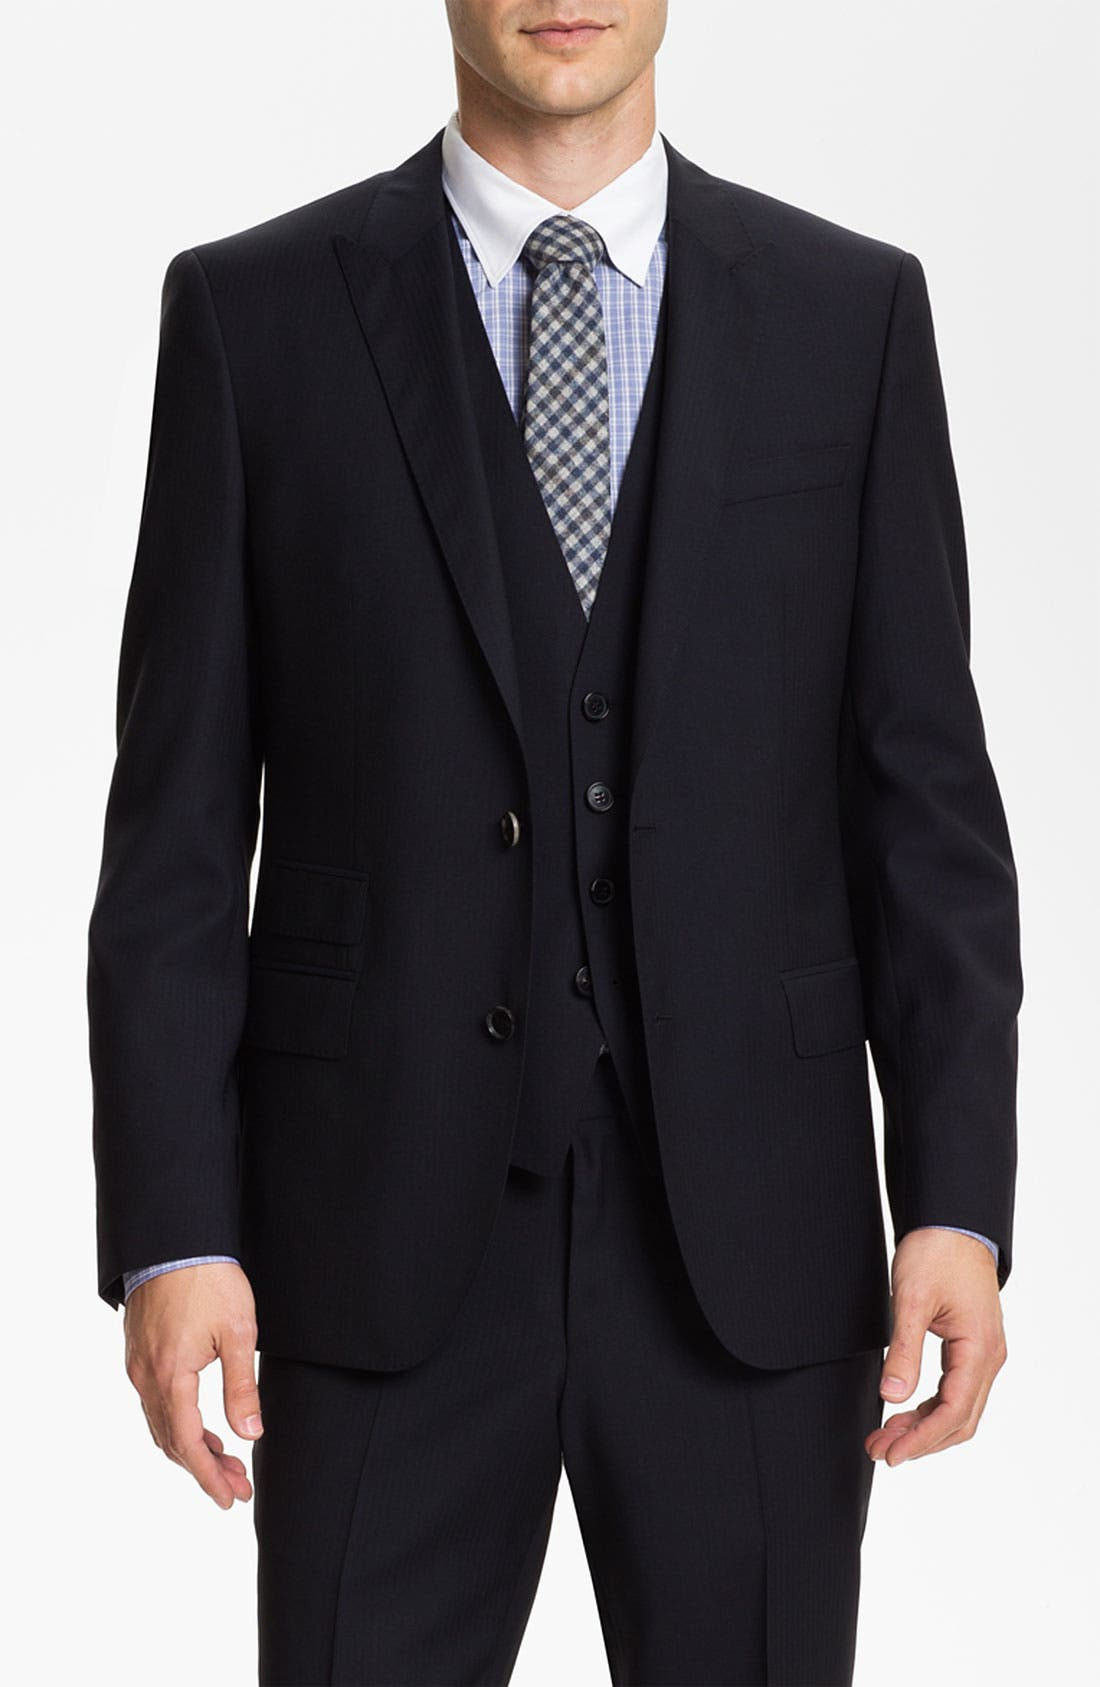 Main Image - BOSS Black 'Hold/Genius' Trim Fit Three Piece Suit